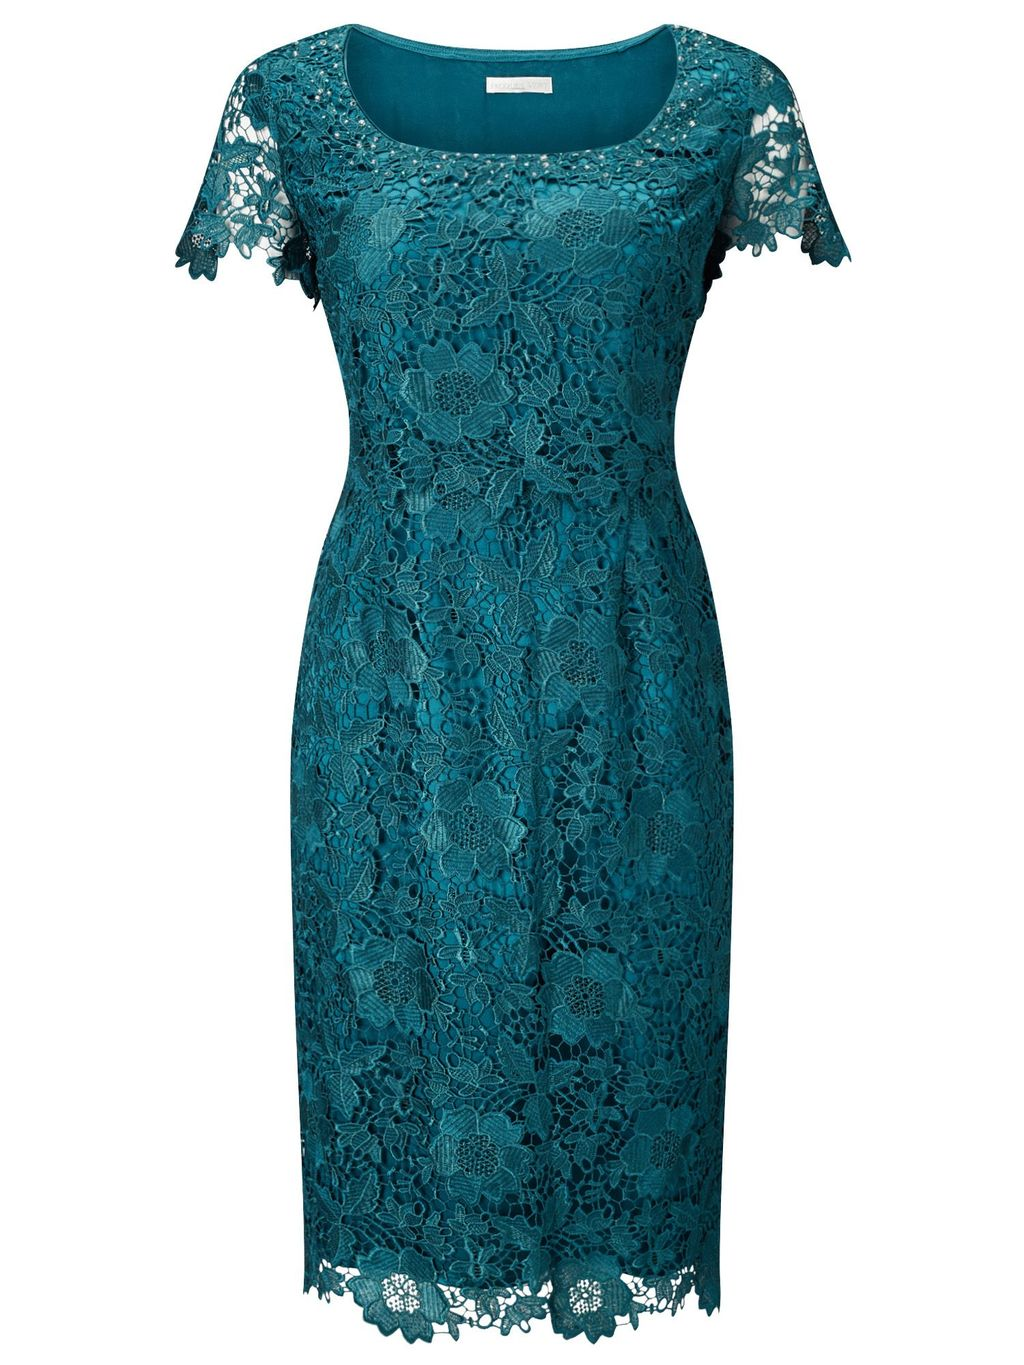 Lace Layer Dress, Green - style: shift; neckline: round neck; sleeve style: capped; fit: tailored/fitted; predominant colour: emerald green; occasions: evening, occasion; length: just above the knee; fibres: polyester/polyamide - 100%; sleeve length: short sleeve; texture group: lace; pattern type: fabric; pattern size: light/subtle; pattern: patterned/print; embellishment: lace; season: s/s 2016